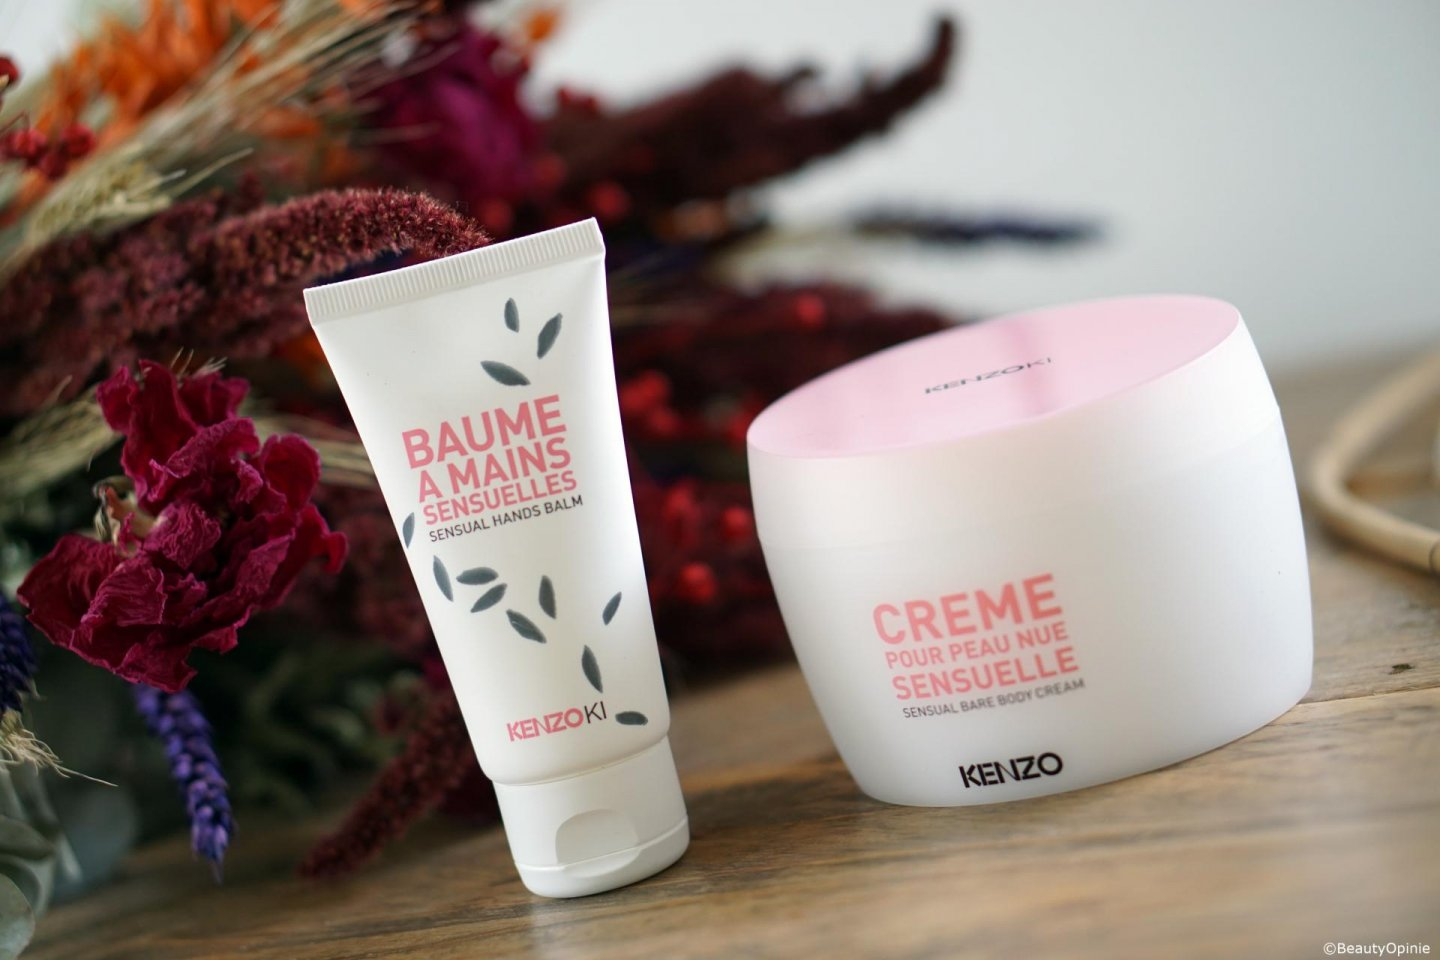 Kenzoki Sensual handsbalm & bodycream review